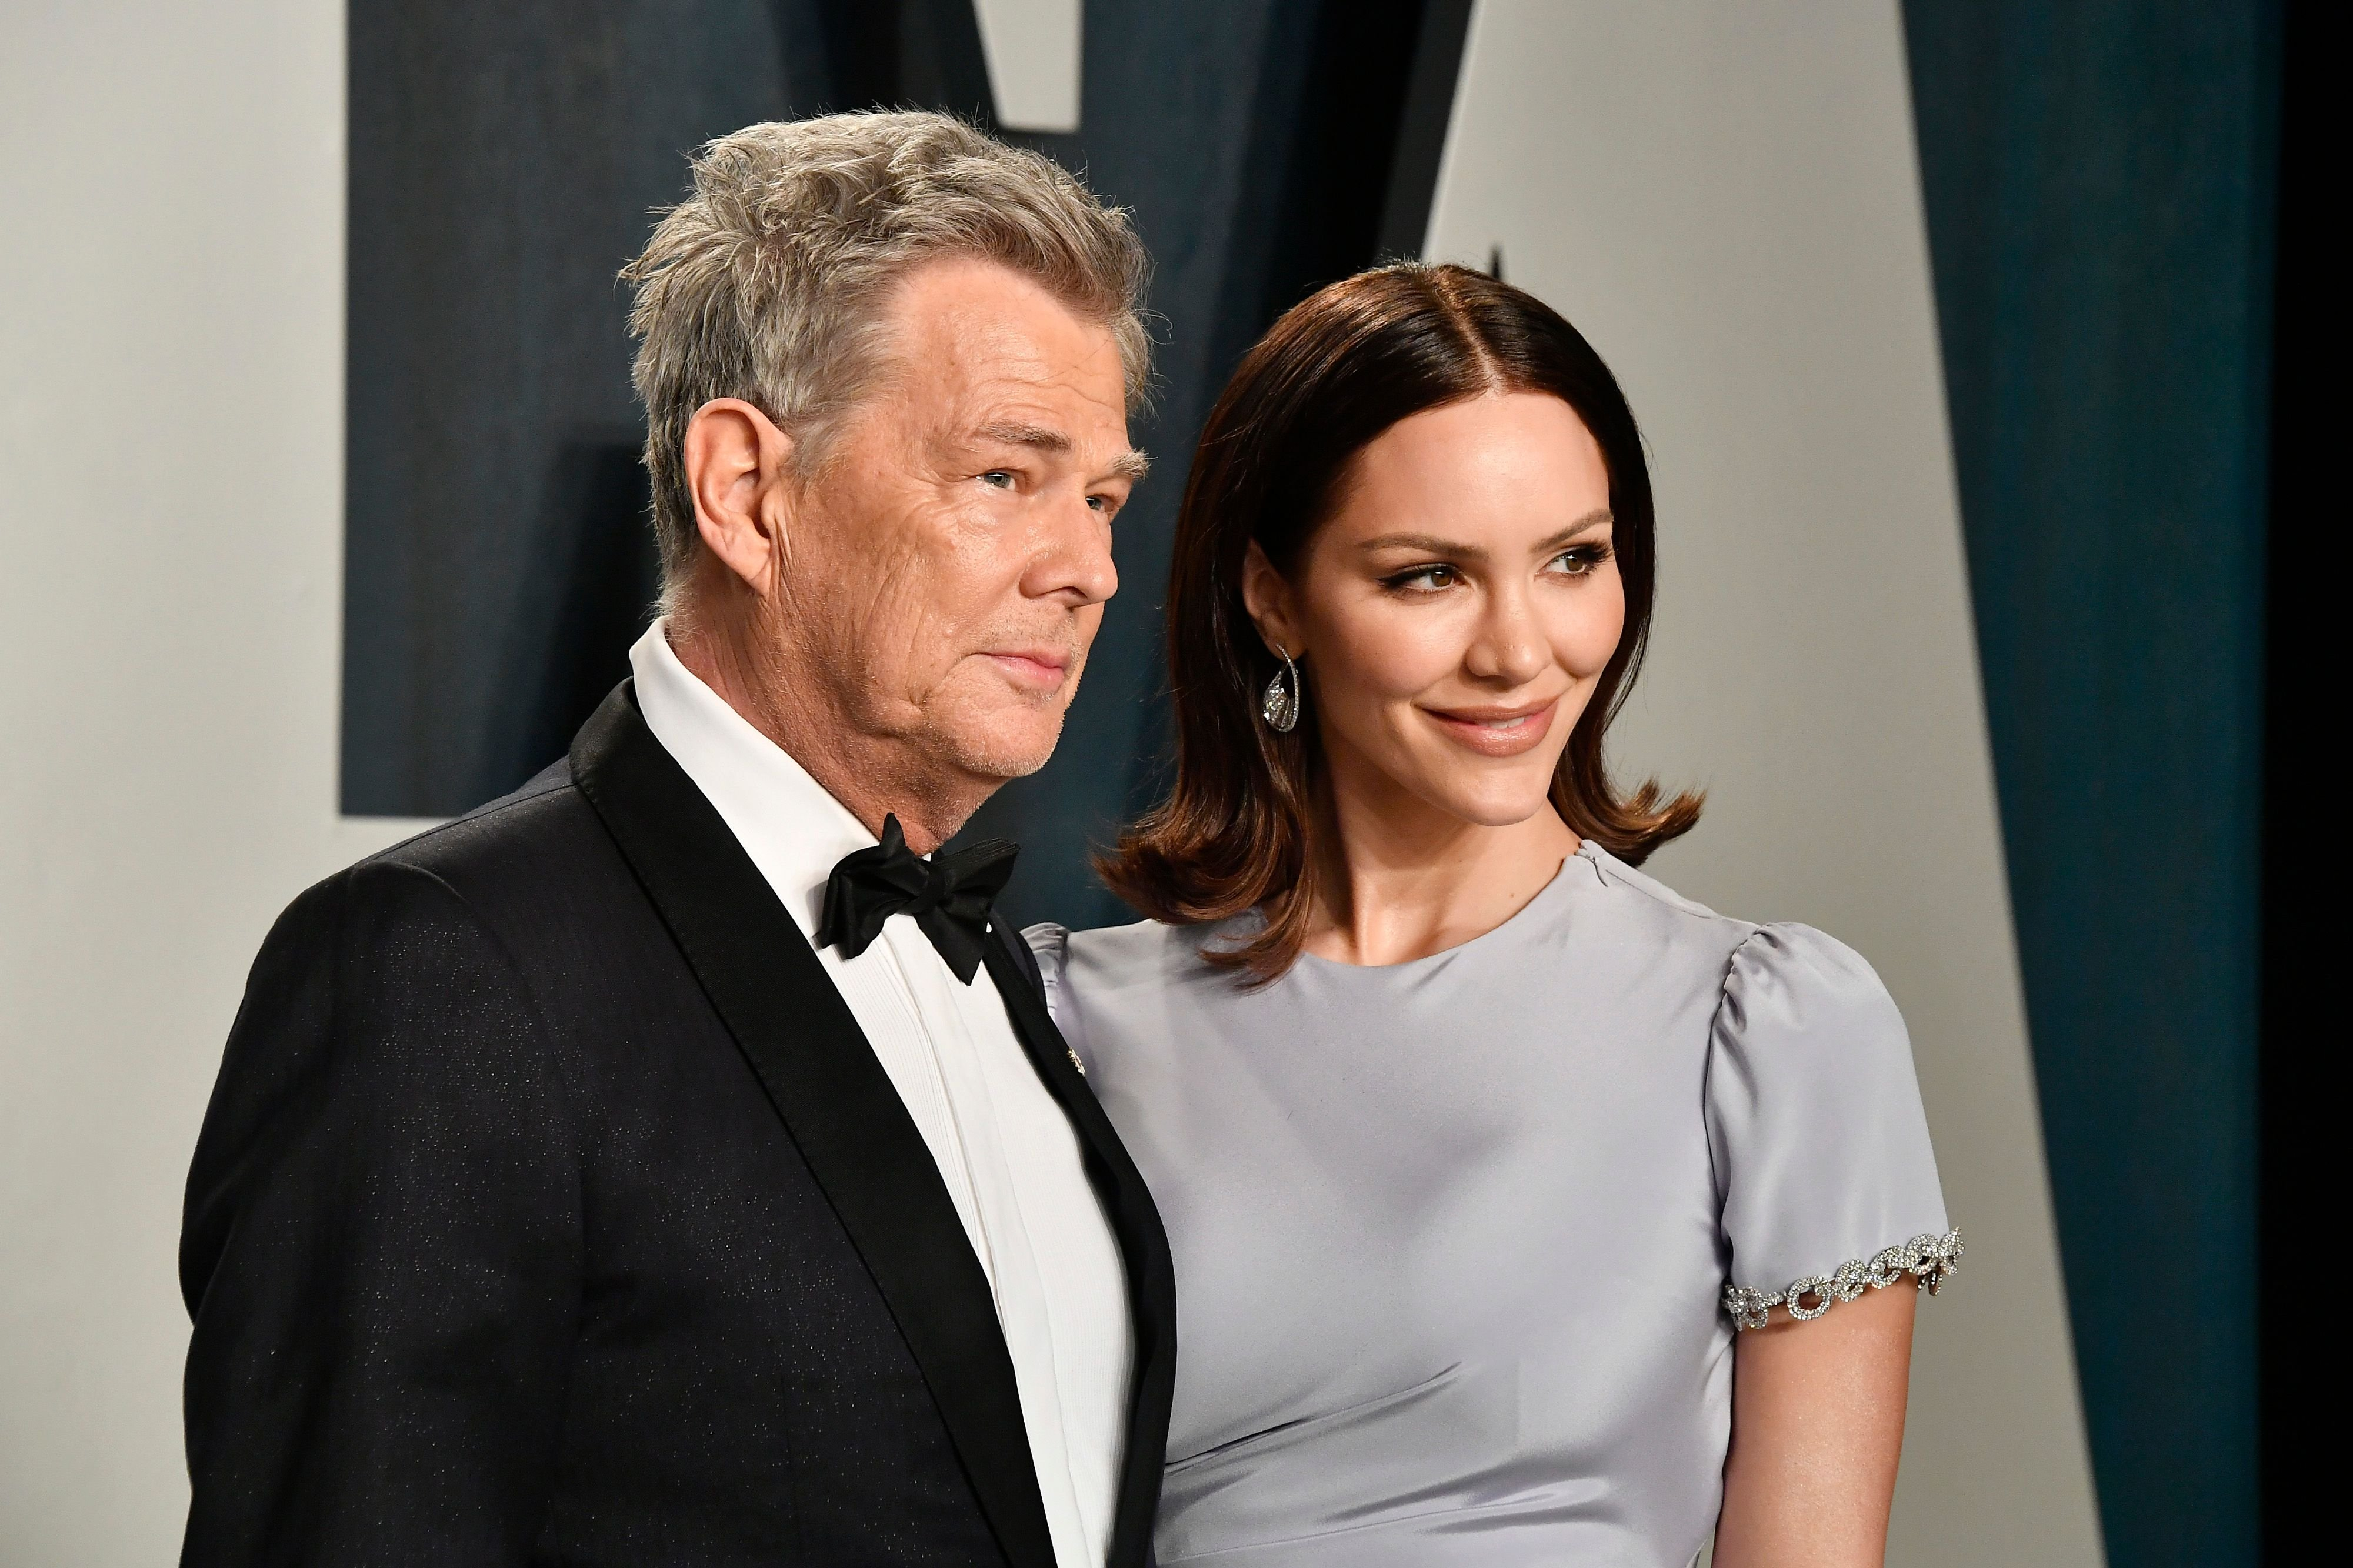 David Foster and Katharine McPhee at the 2020 Vanity Fair Oscar Party hosted by Radhika Jones at Wallis Annenberg Center for the Performing Arts on February 09, 2020   Photo: Getty Images